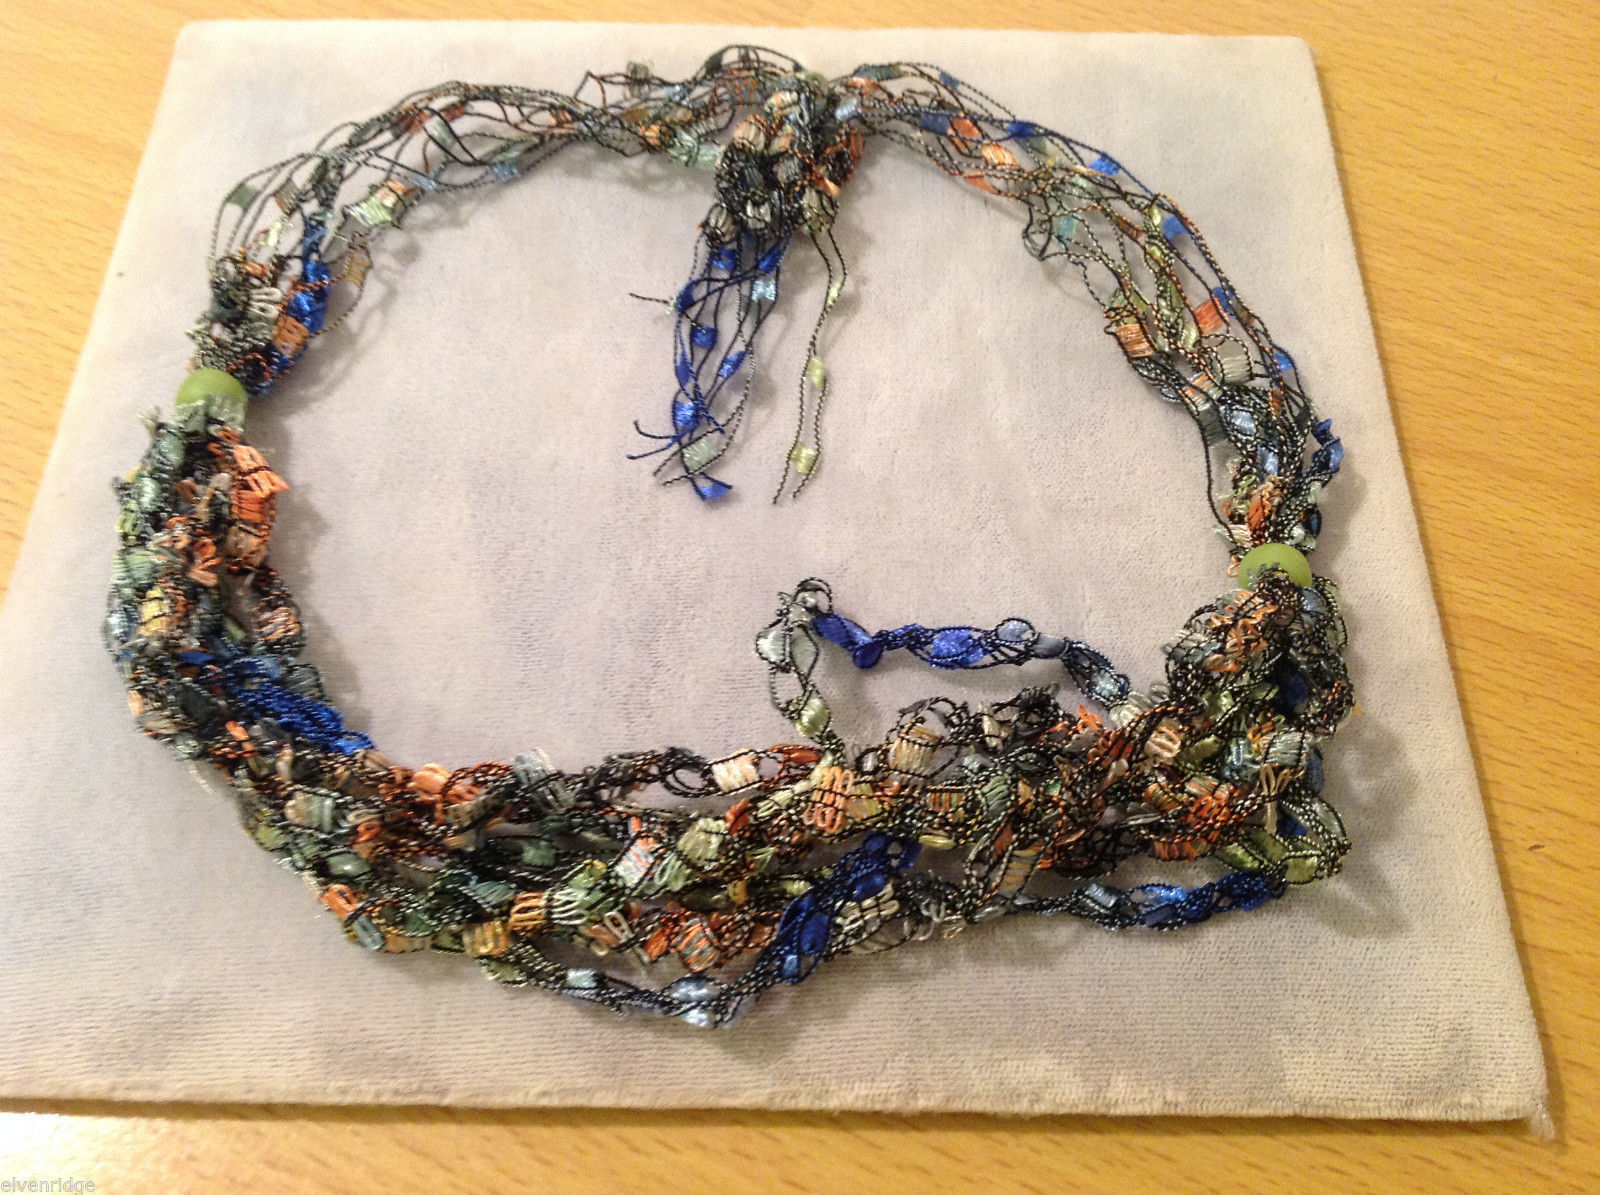 Multi Colored fabric threads necklace / headband / scarf with two green beads